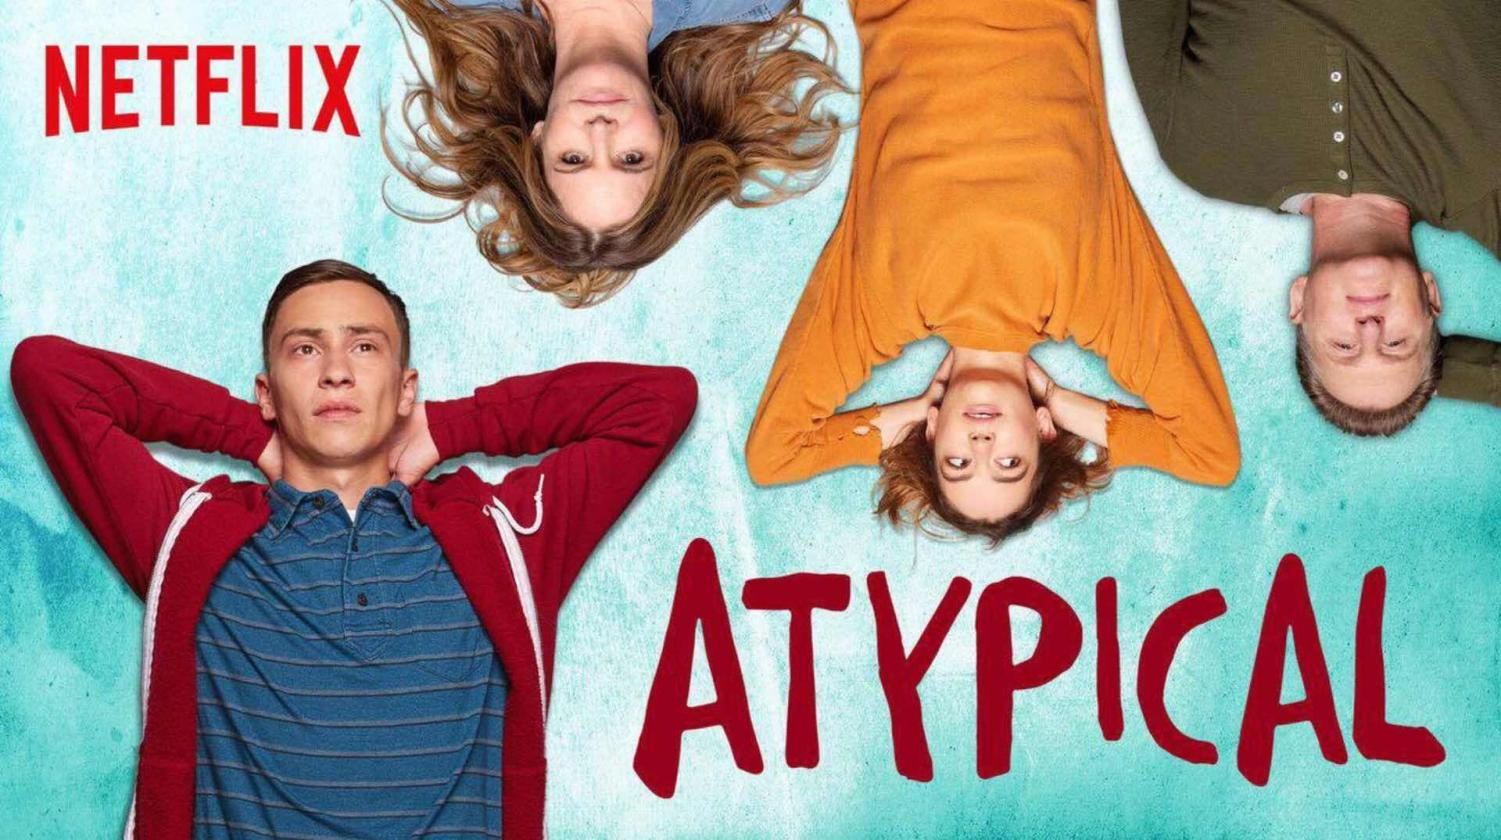 An Atypical Perspective on Atypical